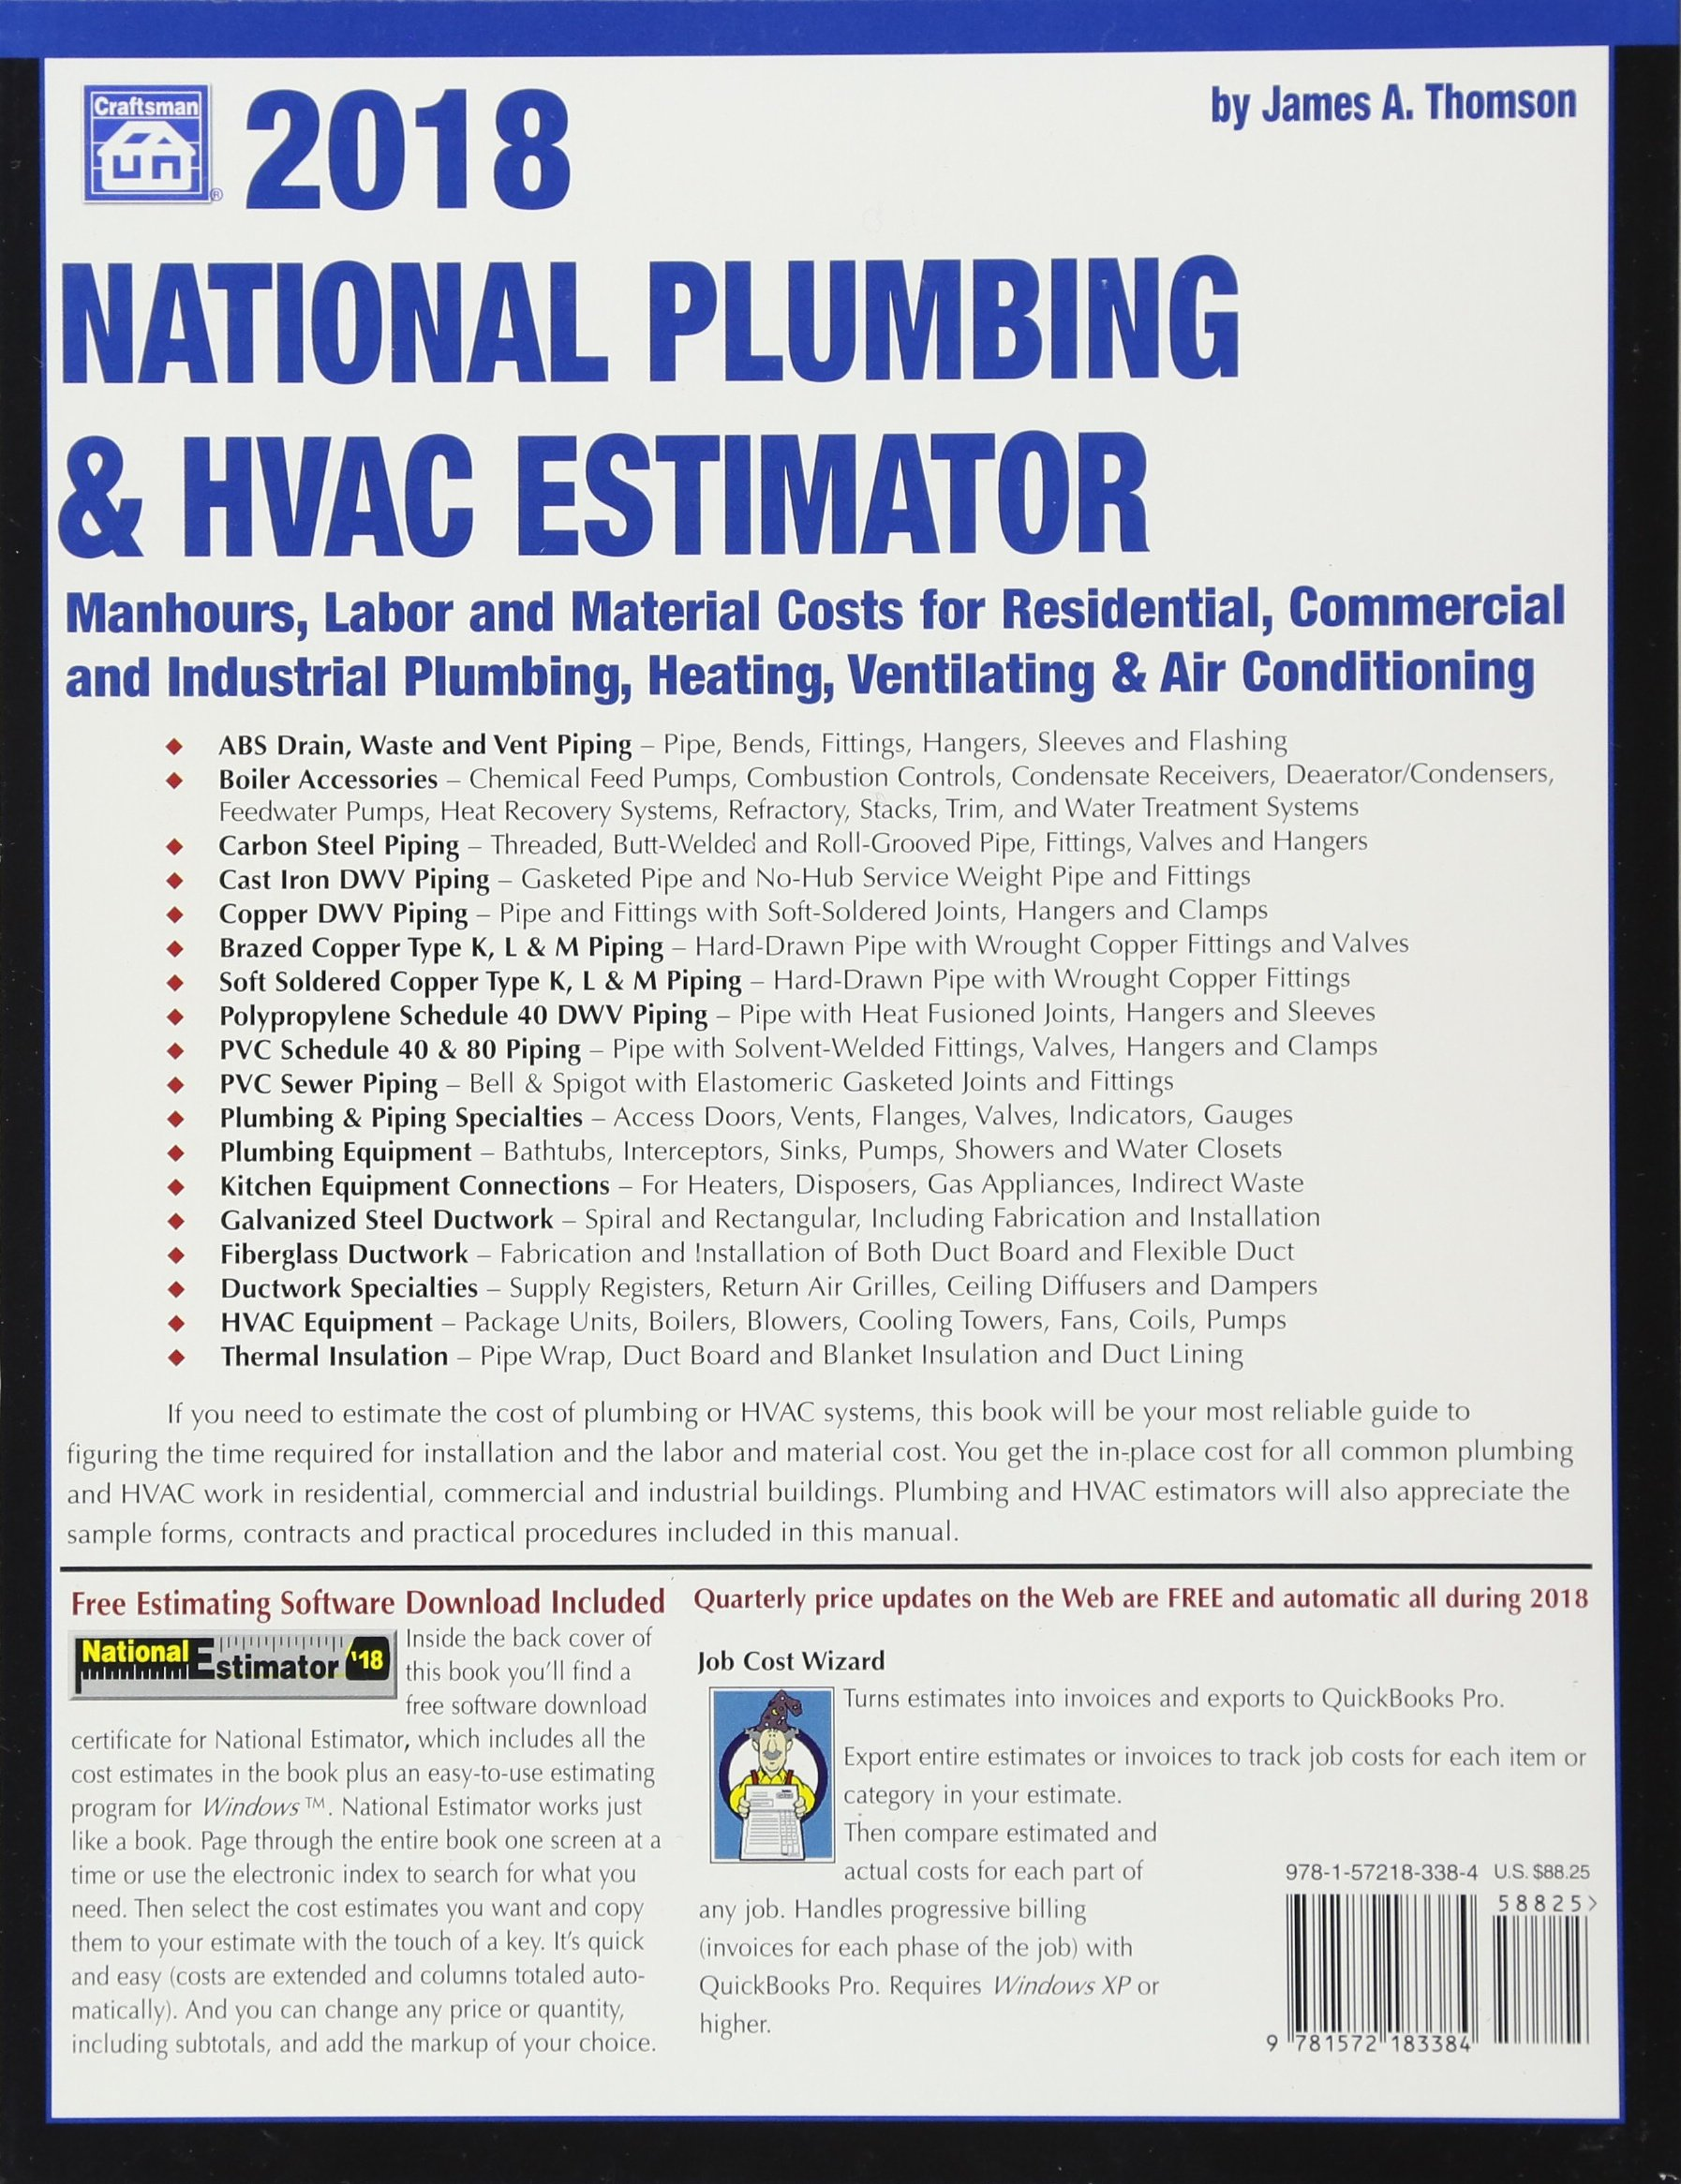 2018 National Plumbing & HVAC Estimator: James A Thomson